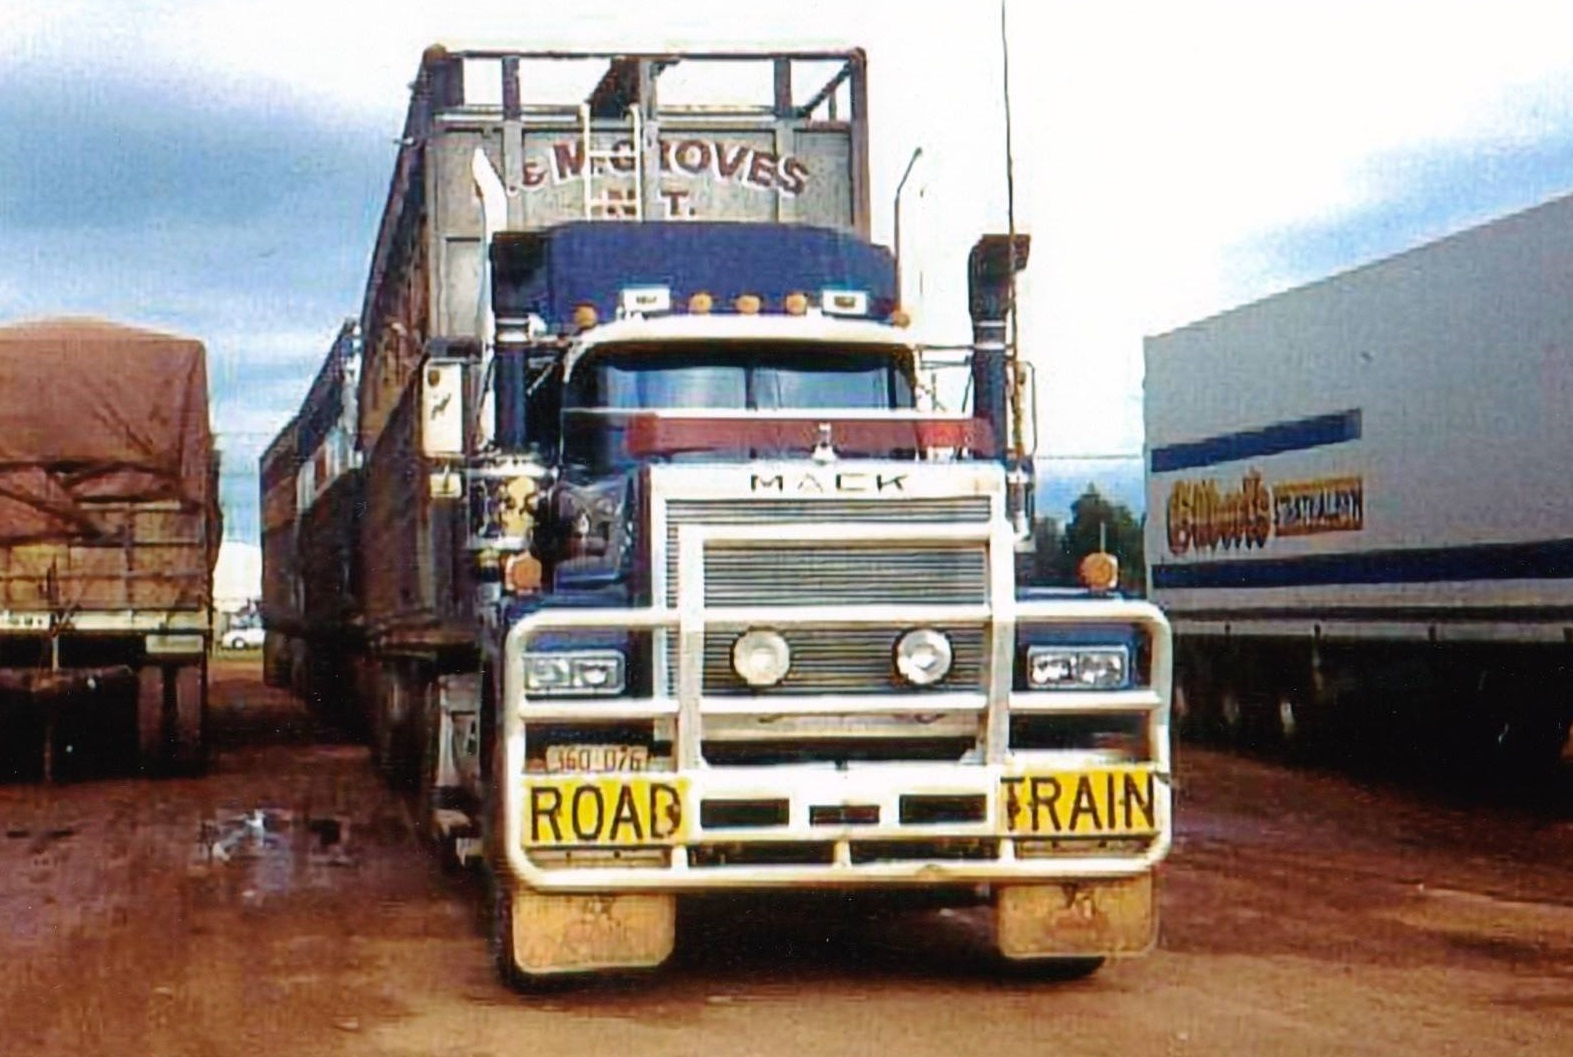 Mack--Kings-Forman-Shell-Truck-City-the-Road-Train-hook-up-yard-in-Darwin-back-in-the-1990-